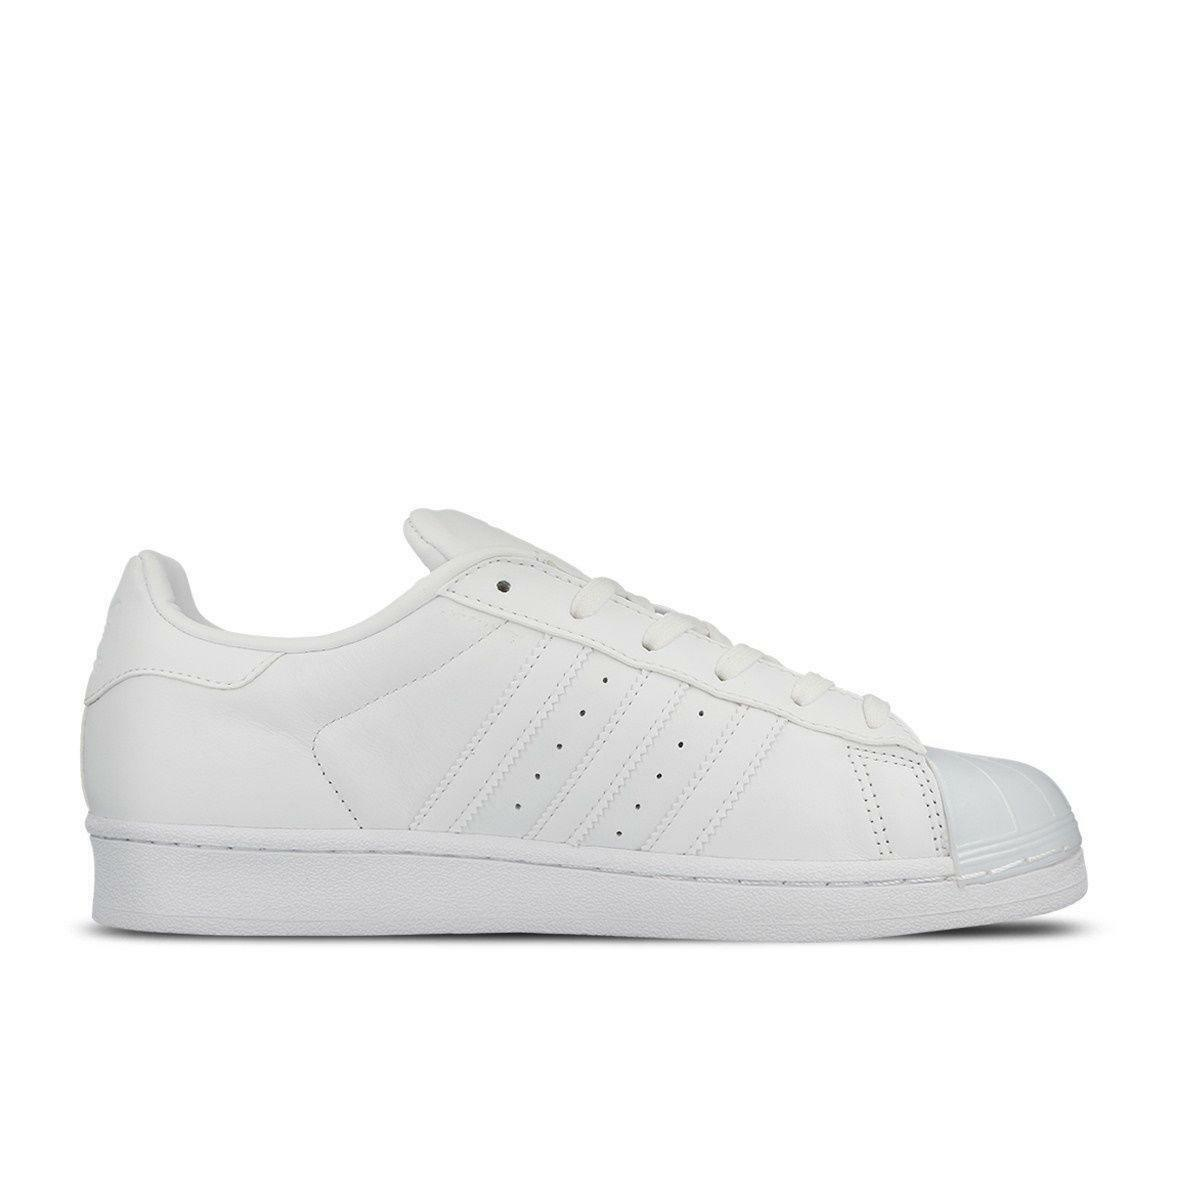 Donna ADIDAS SUPERSTAR GLOSSY TOE W White Pelle Trainers BB0683